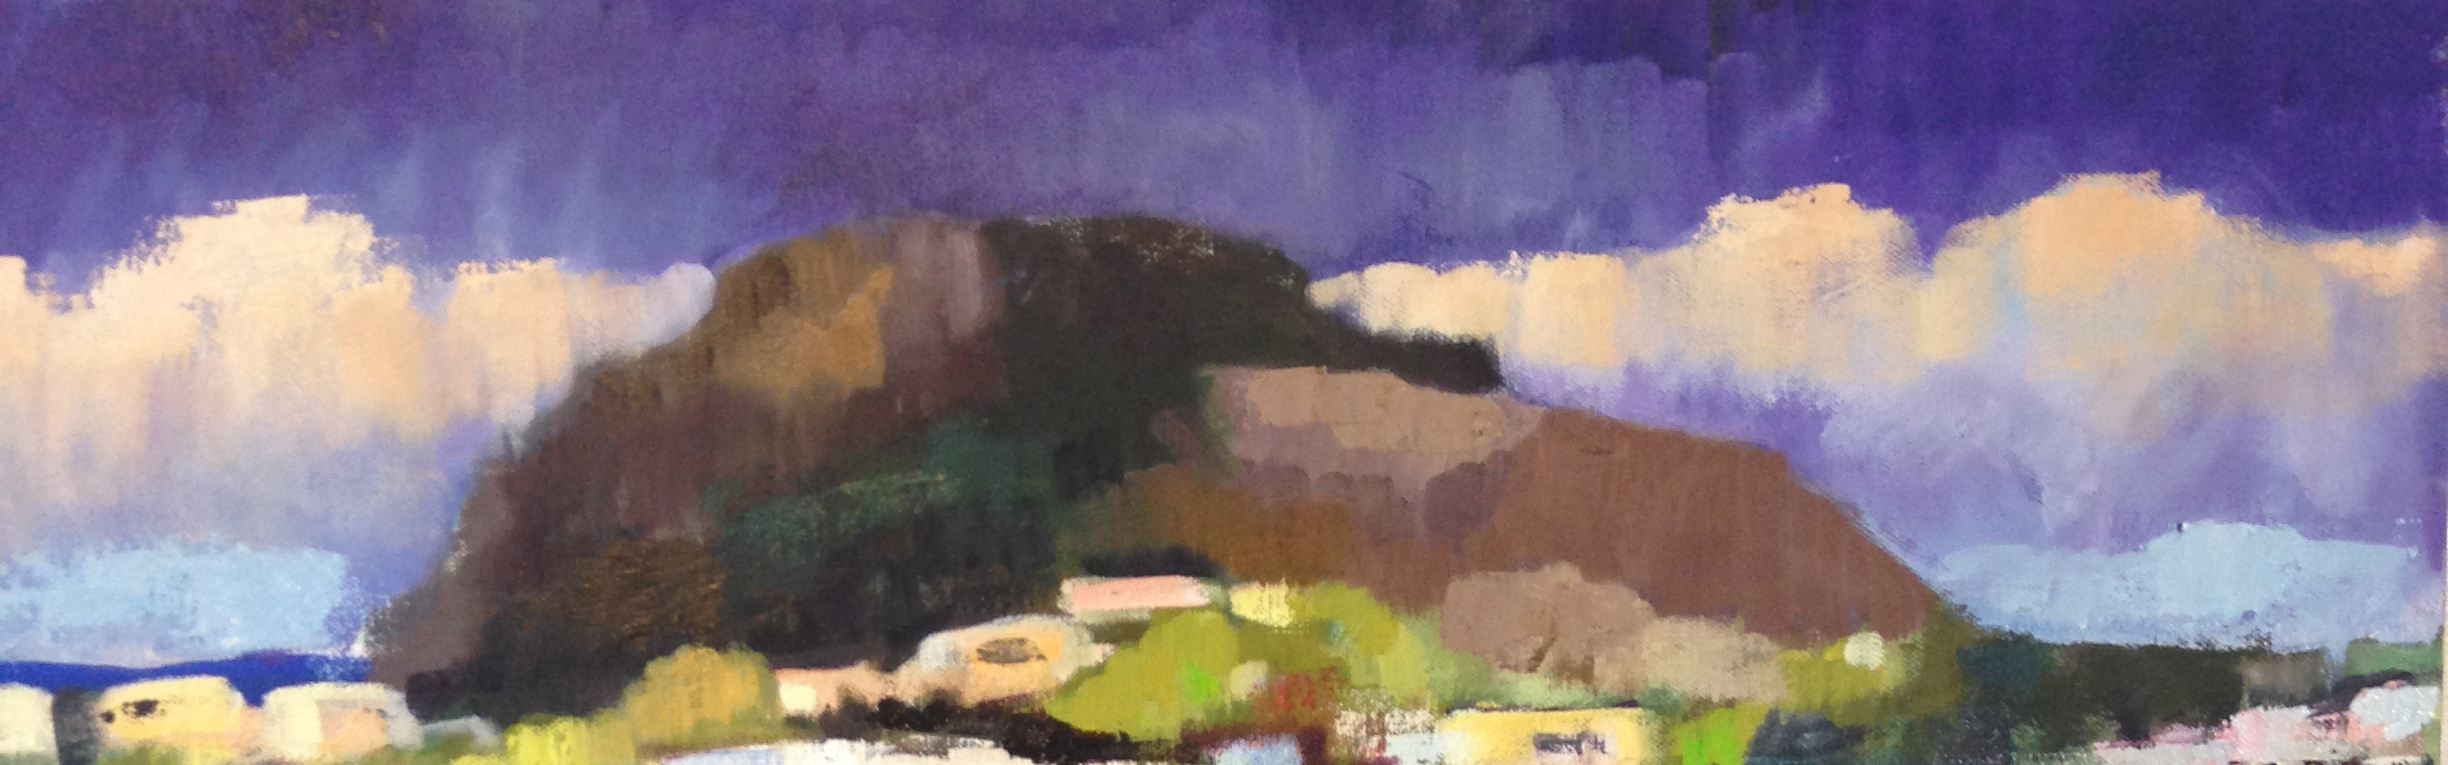 detail from Teresita 4 (Mt Davidson); Miraloma Park Series